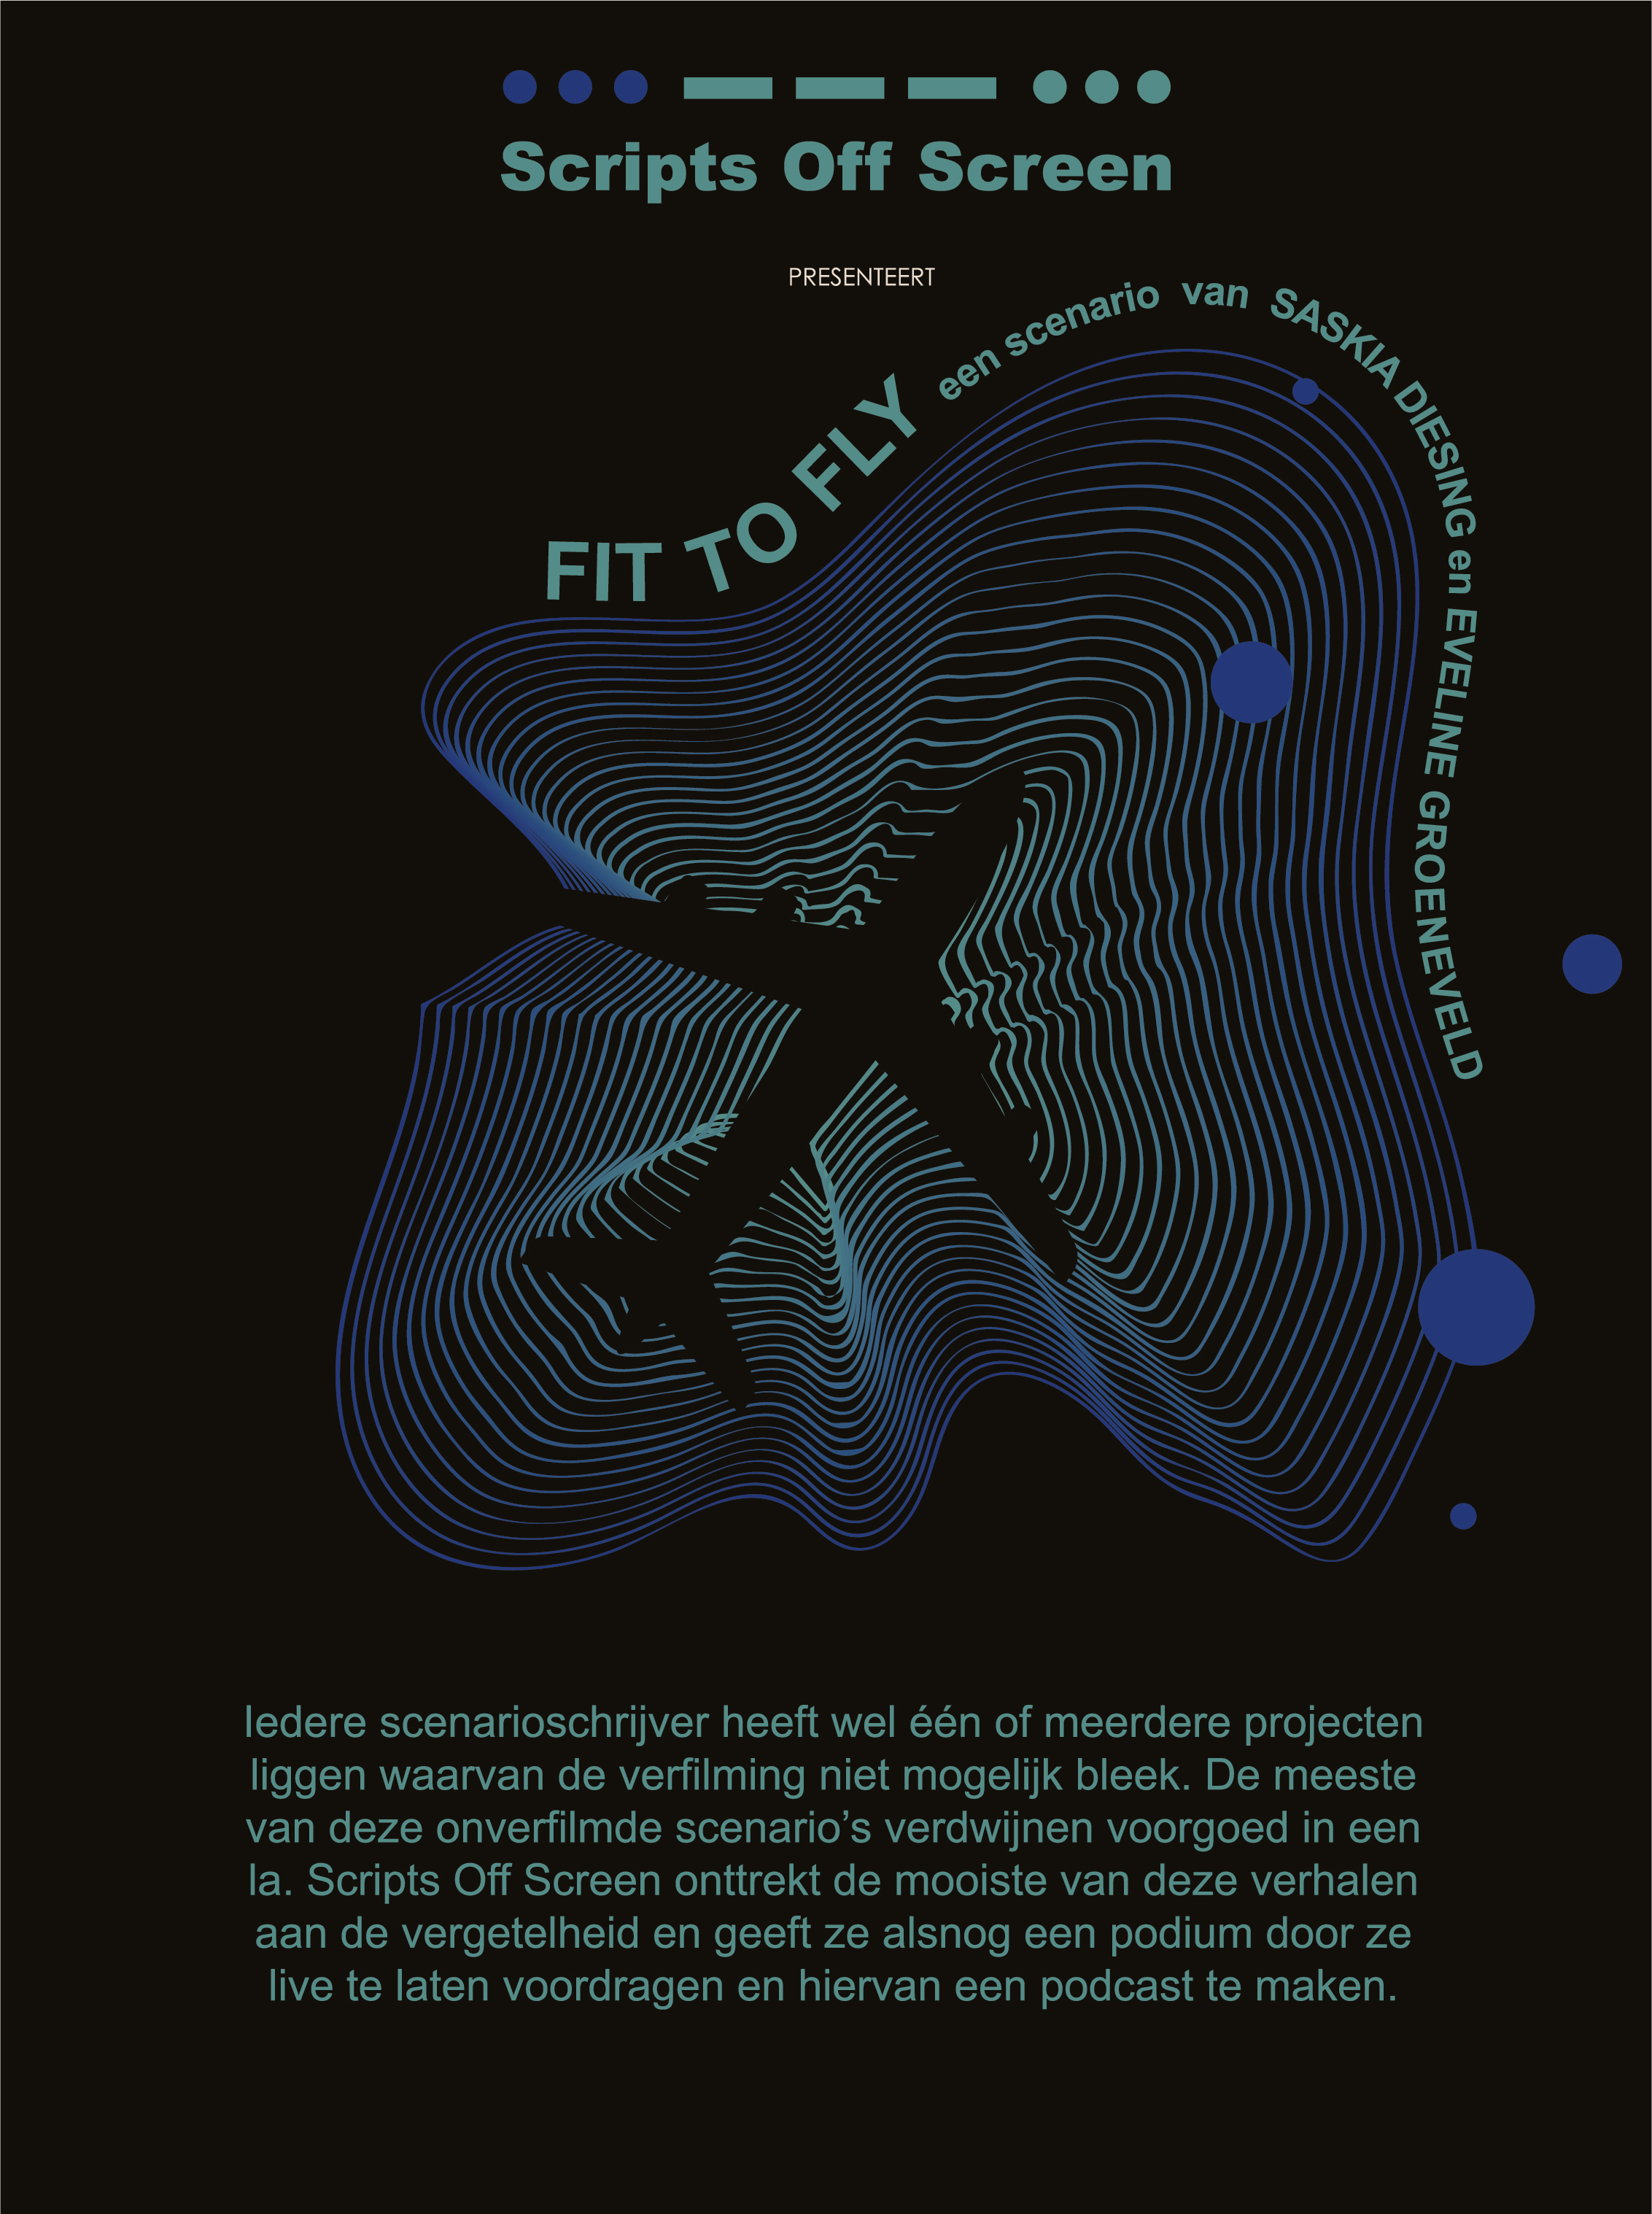 Fly to Fit